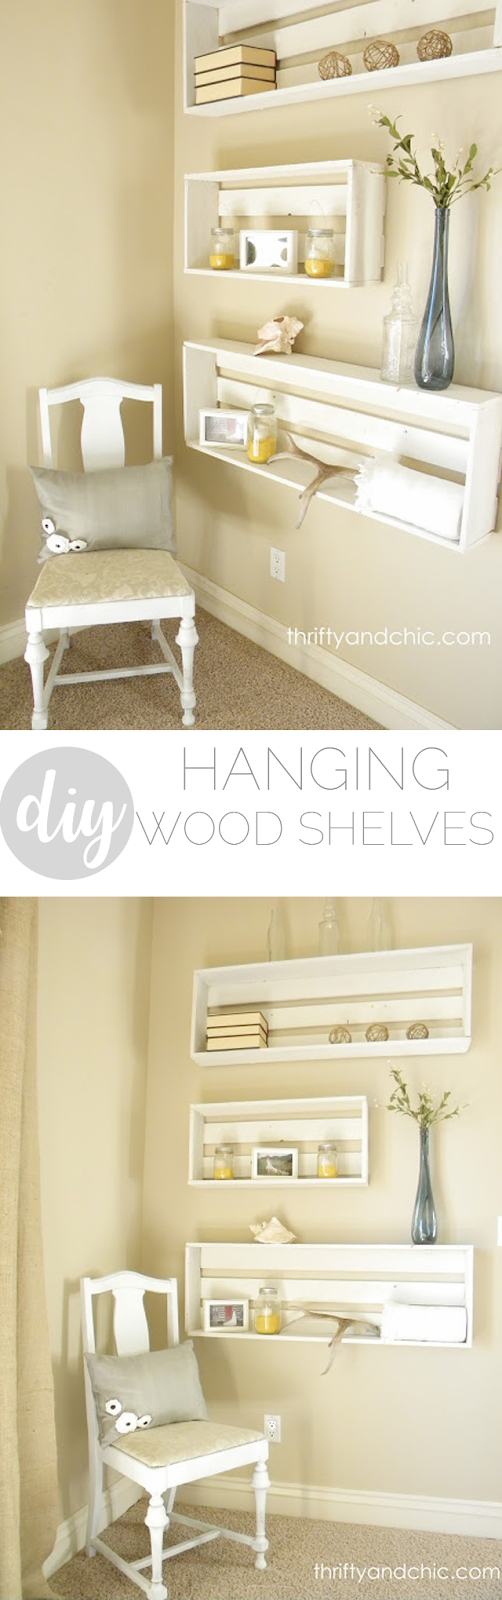 DIY farmhouse style hanging shelves made from wood or reclaimed wood. Farmhouse decor and decorating ideas